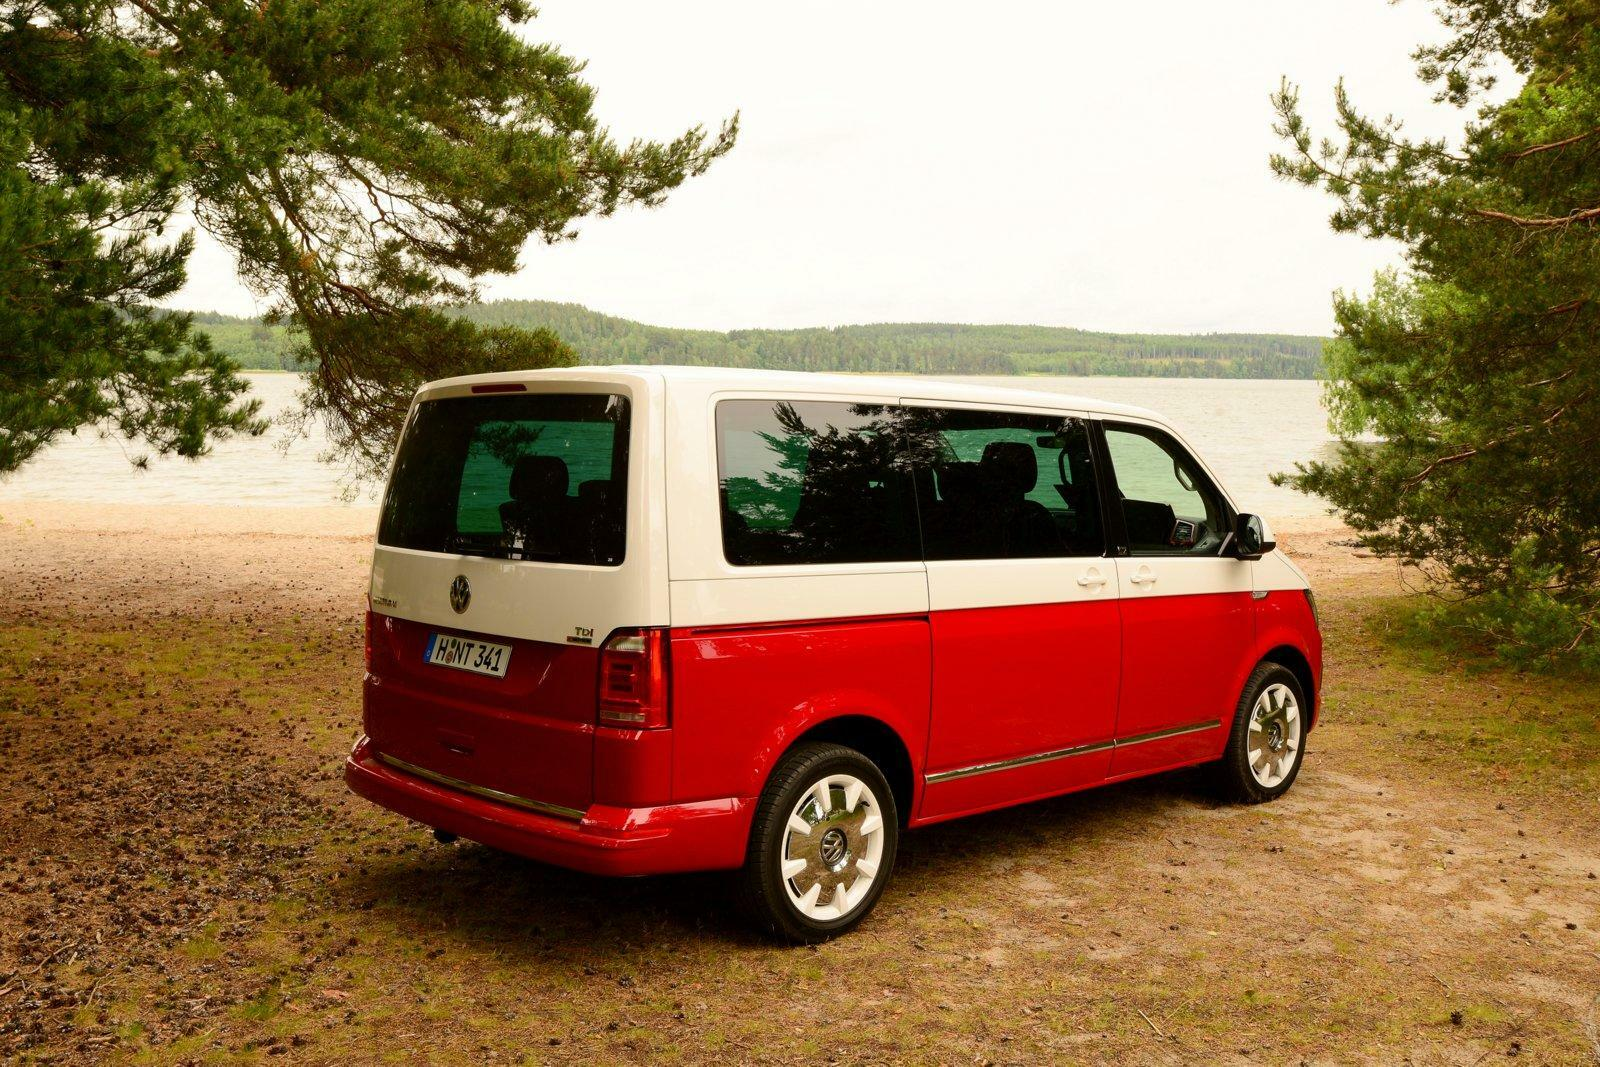 Multivan Volkswagen File Vw Multivan Tdi T5 Facelift Rear